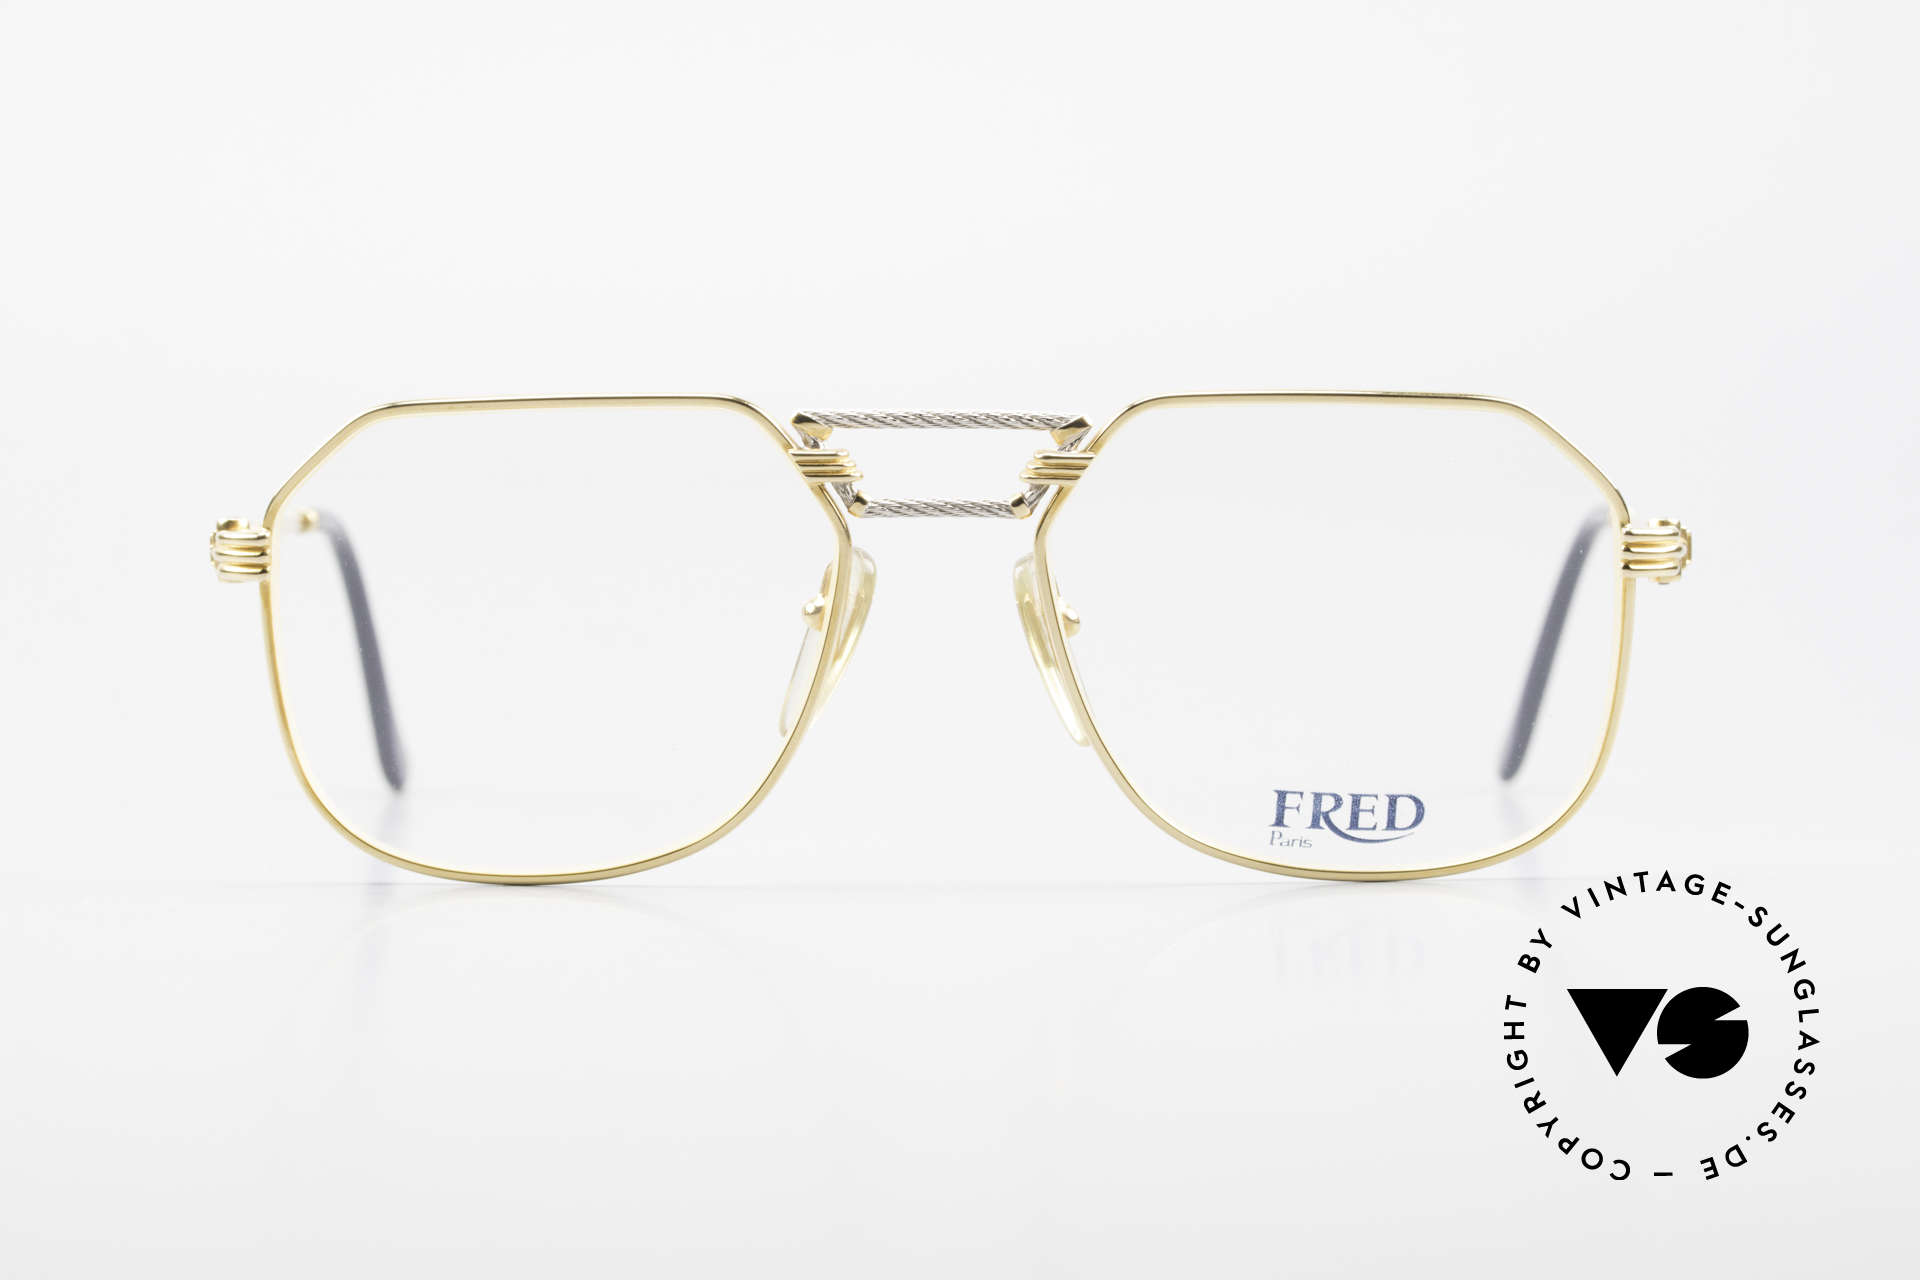 Fred Cap Horn - M Rare 80's Luxury Eyeglasses, marine design (distinctive FRED) in high-end quality, Made for Men